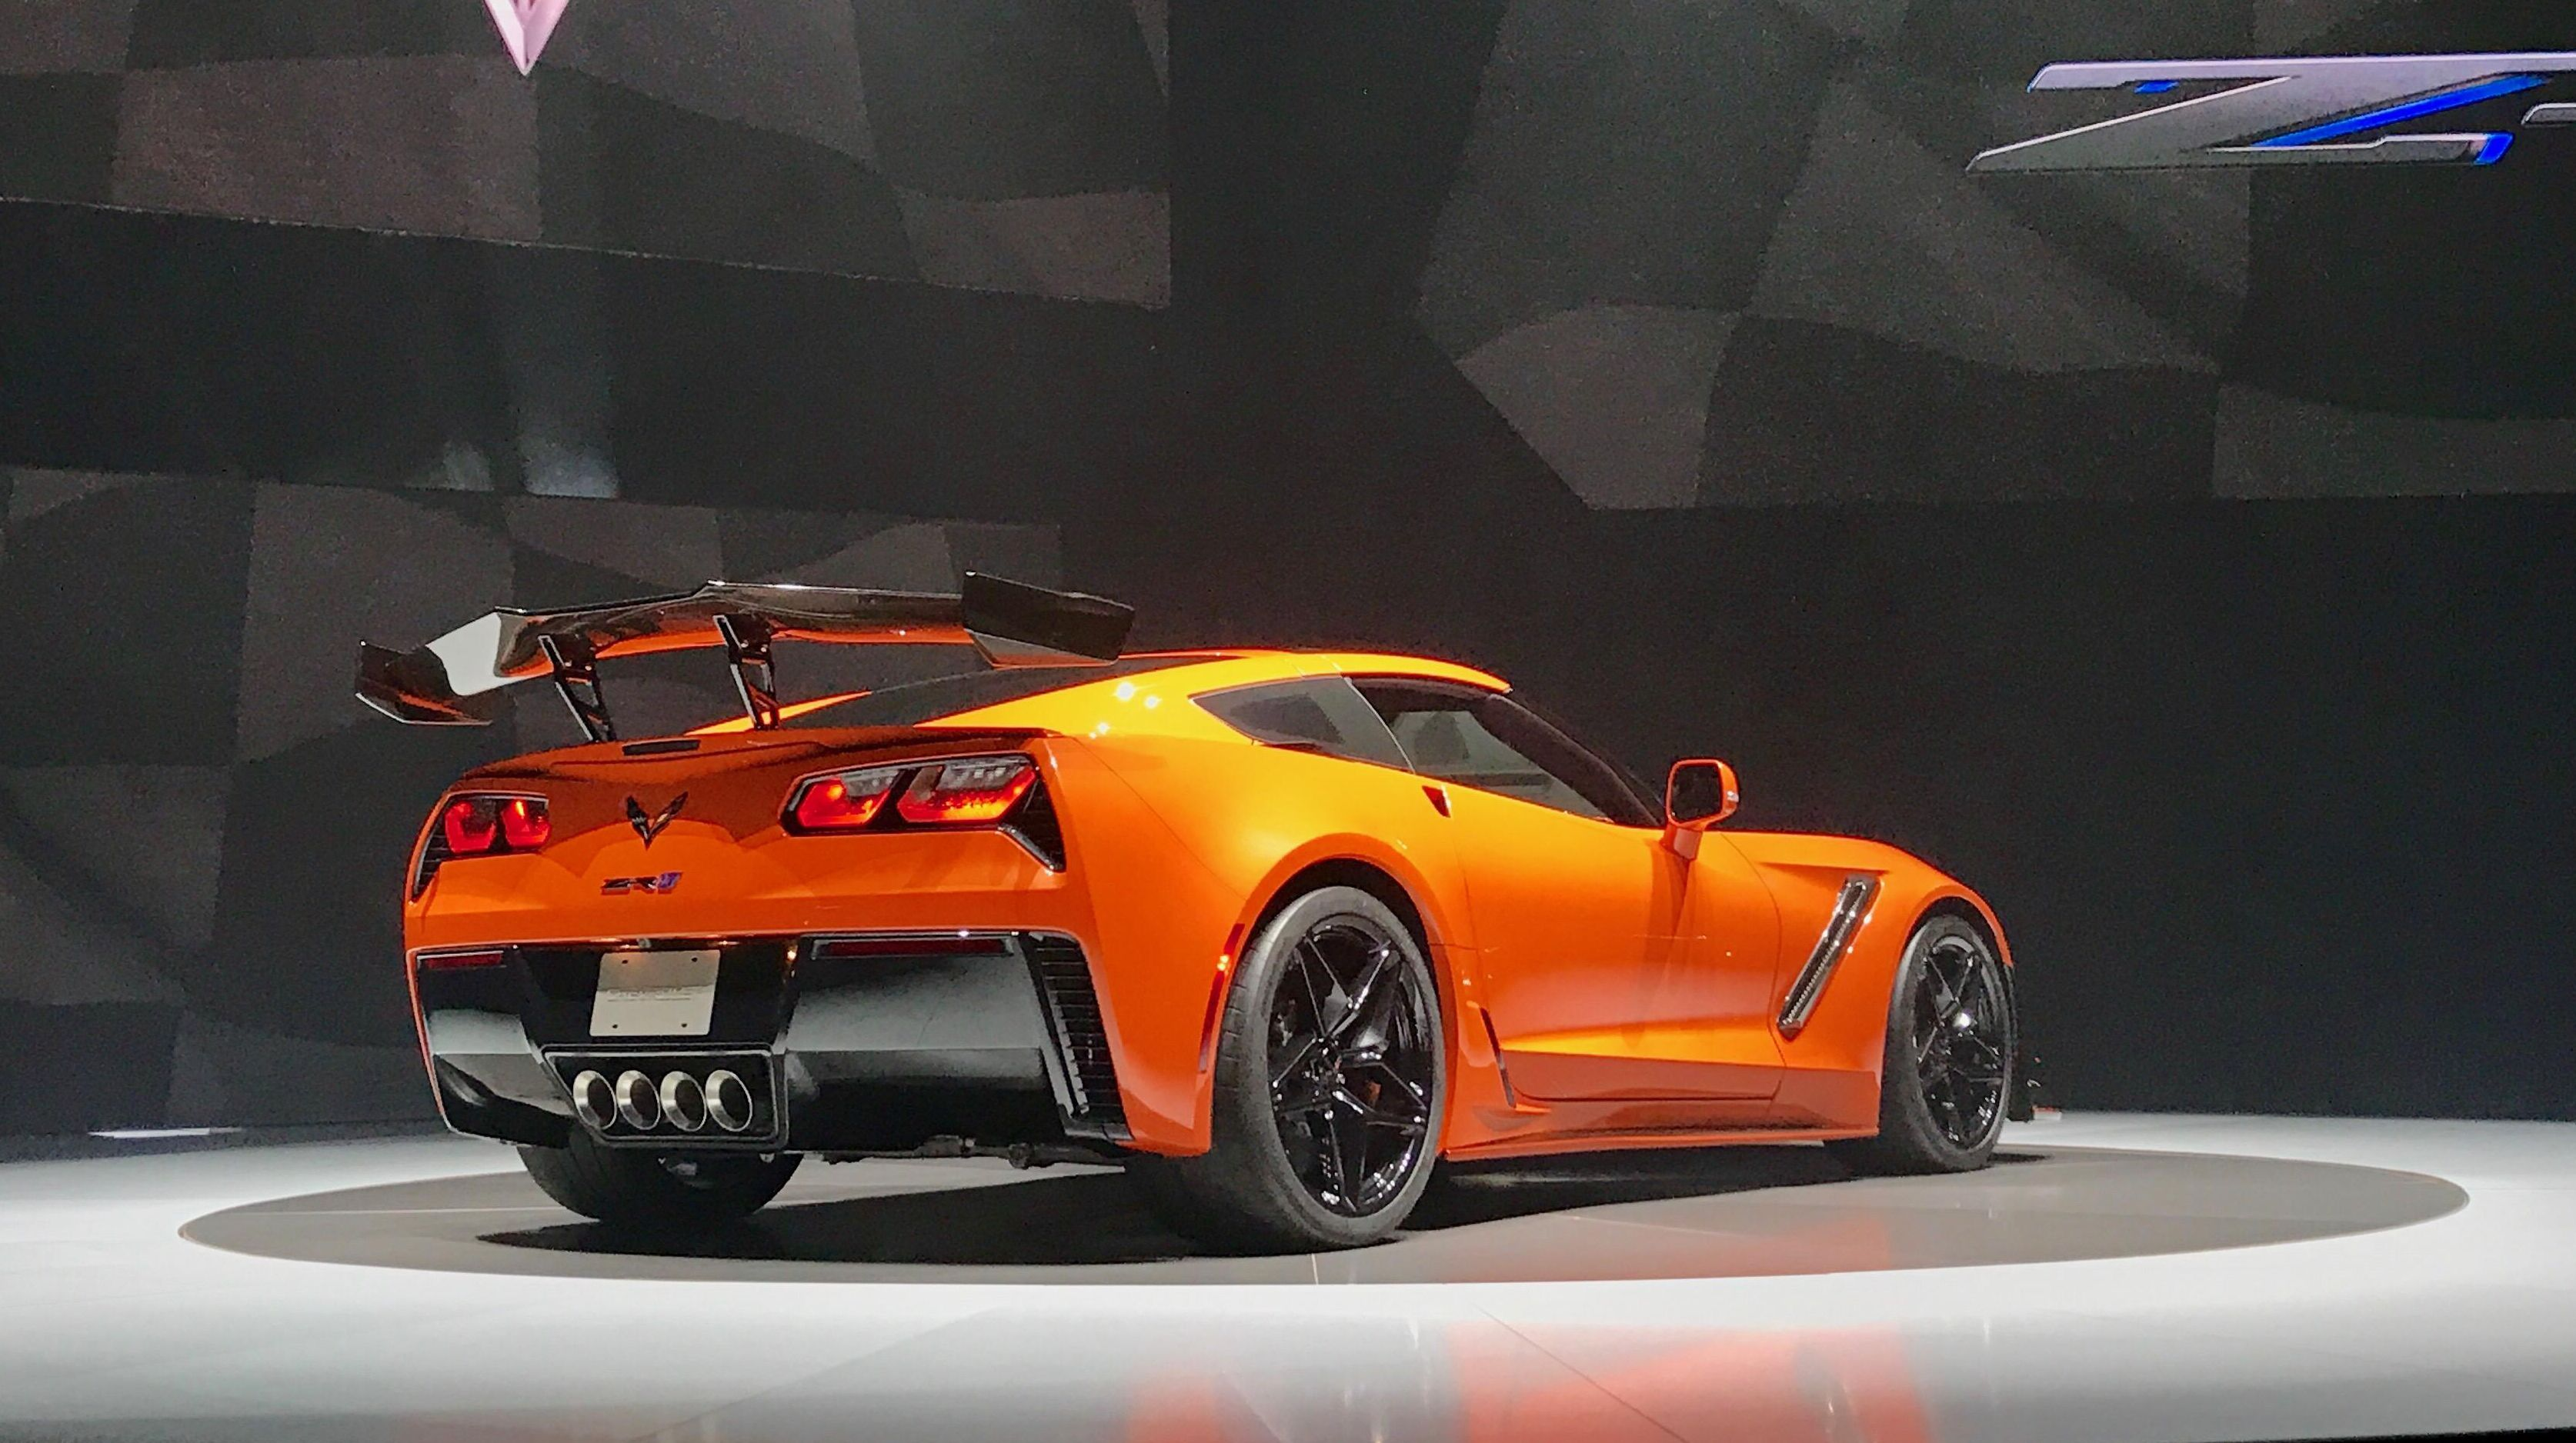 2019-chevrolet-corvette-zr1-5